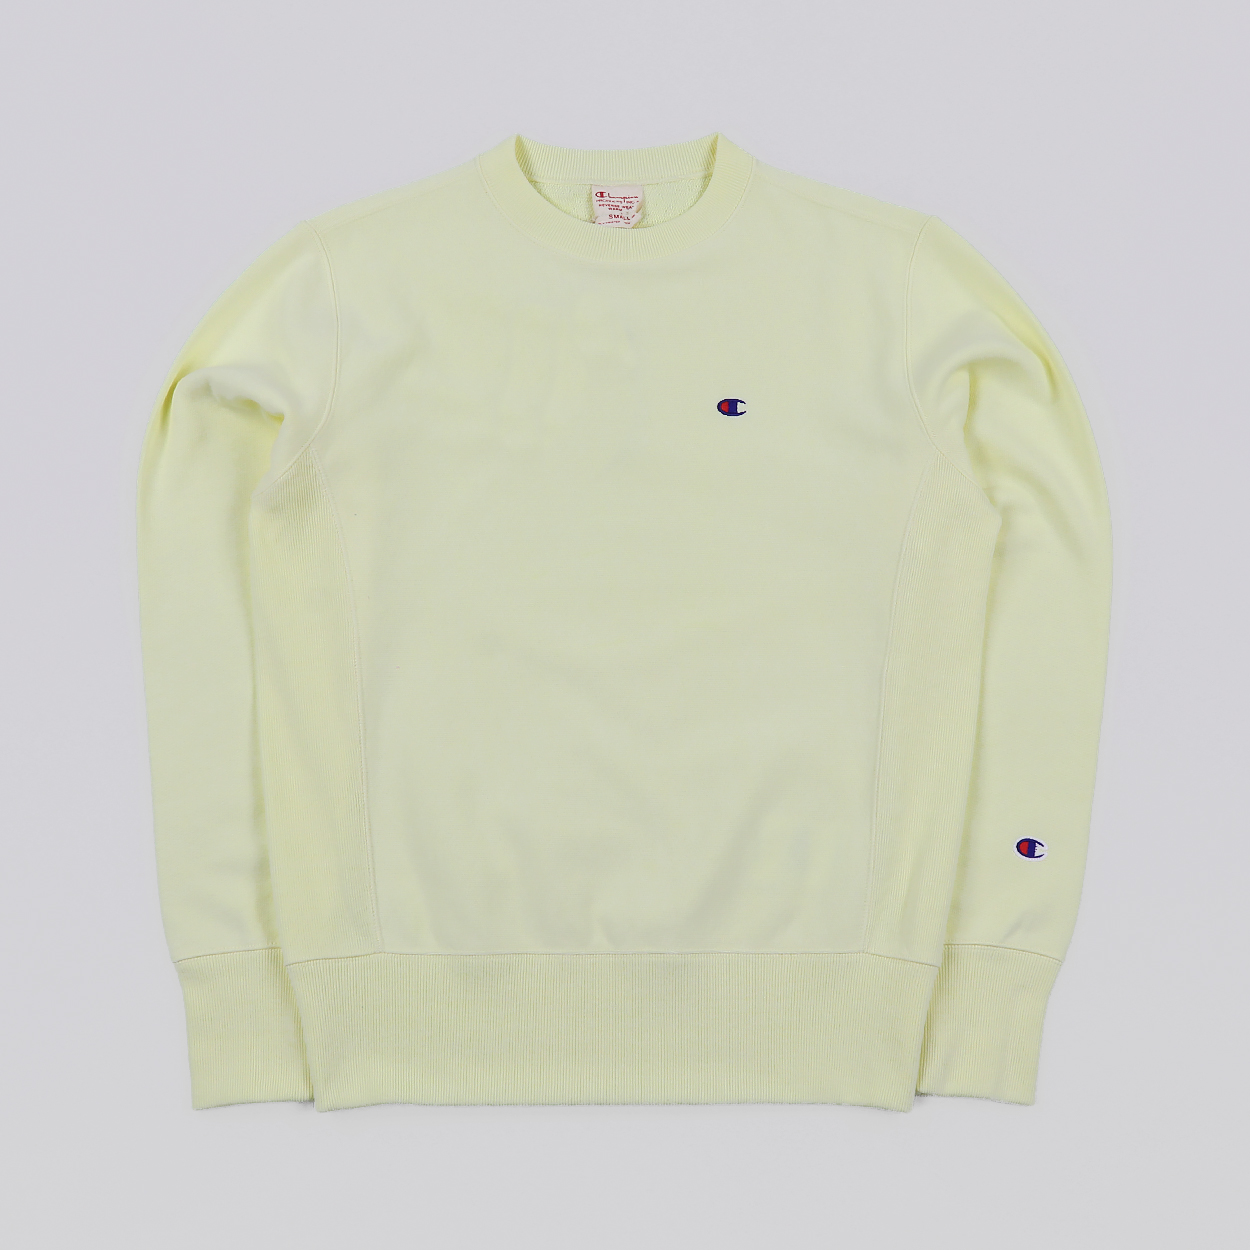 6ddcb9a01a30 Champion Reverse Weave Crew Neck Cotton Sweater Faded Yellow £56.00